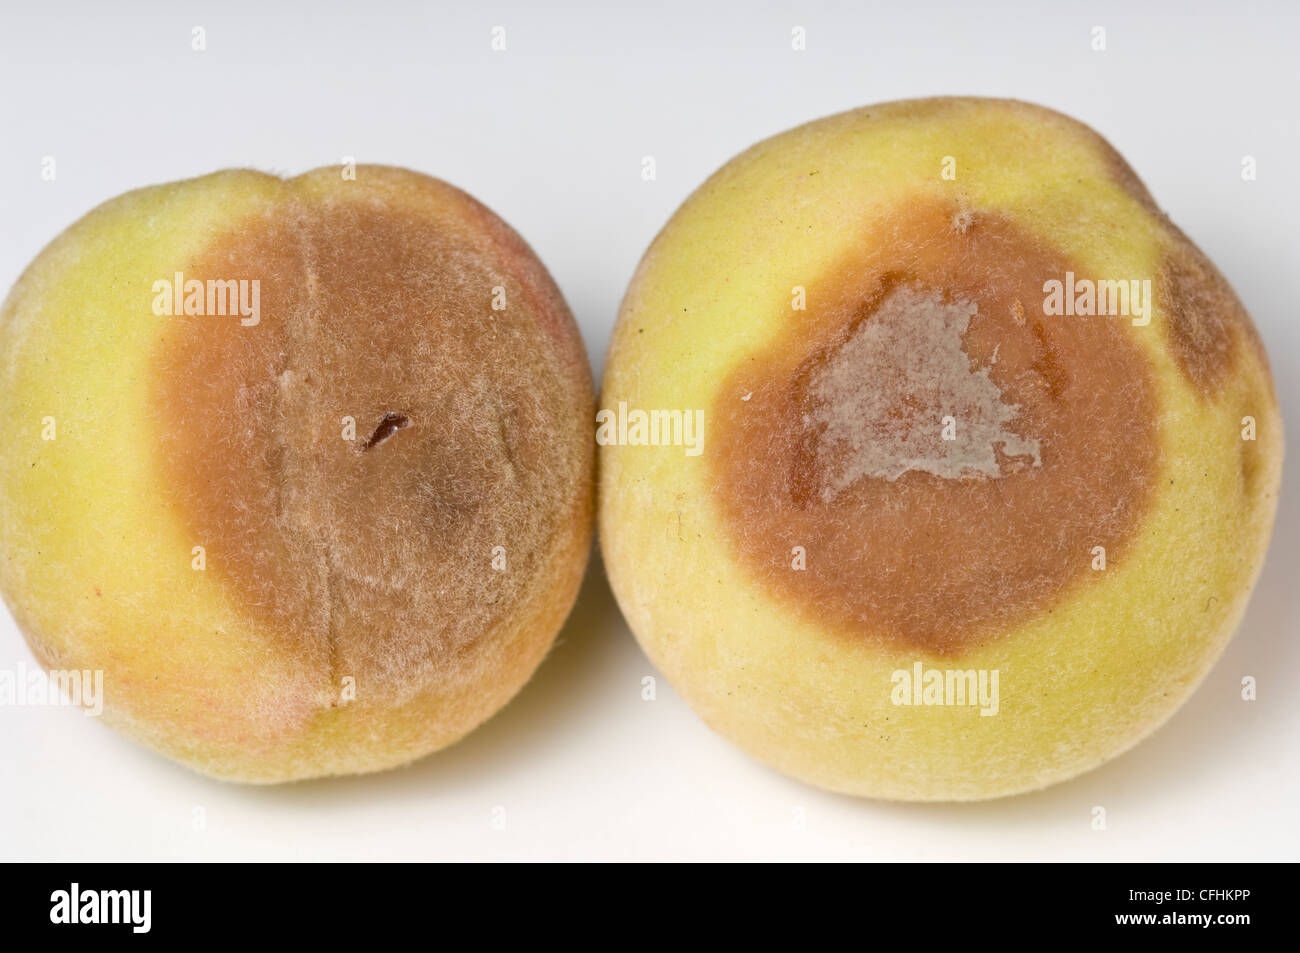 Brown rot symptoms on peaches - Stock Image